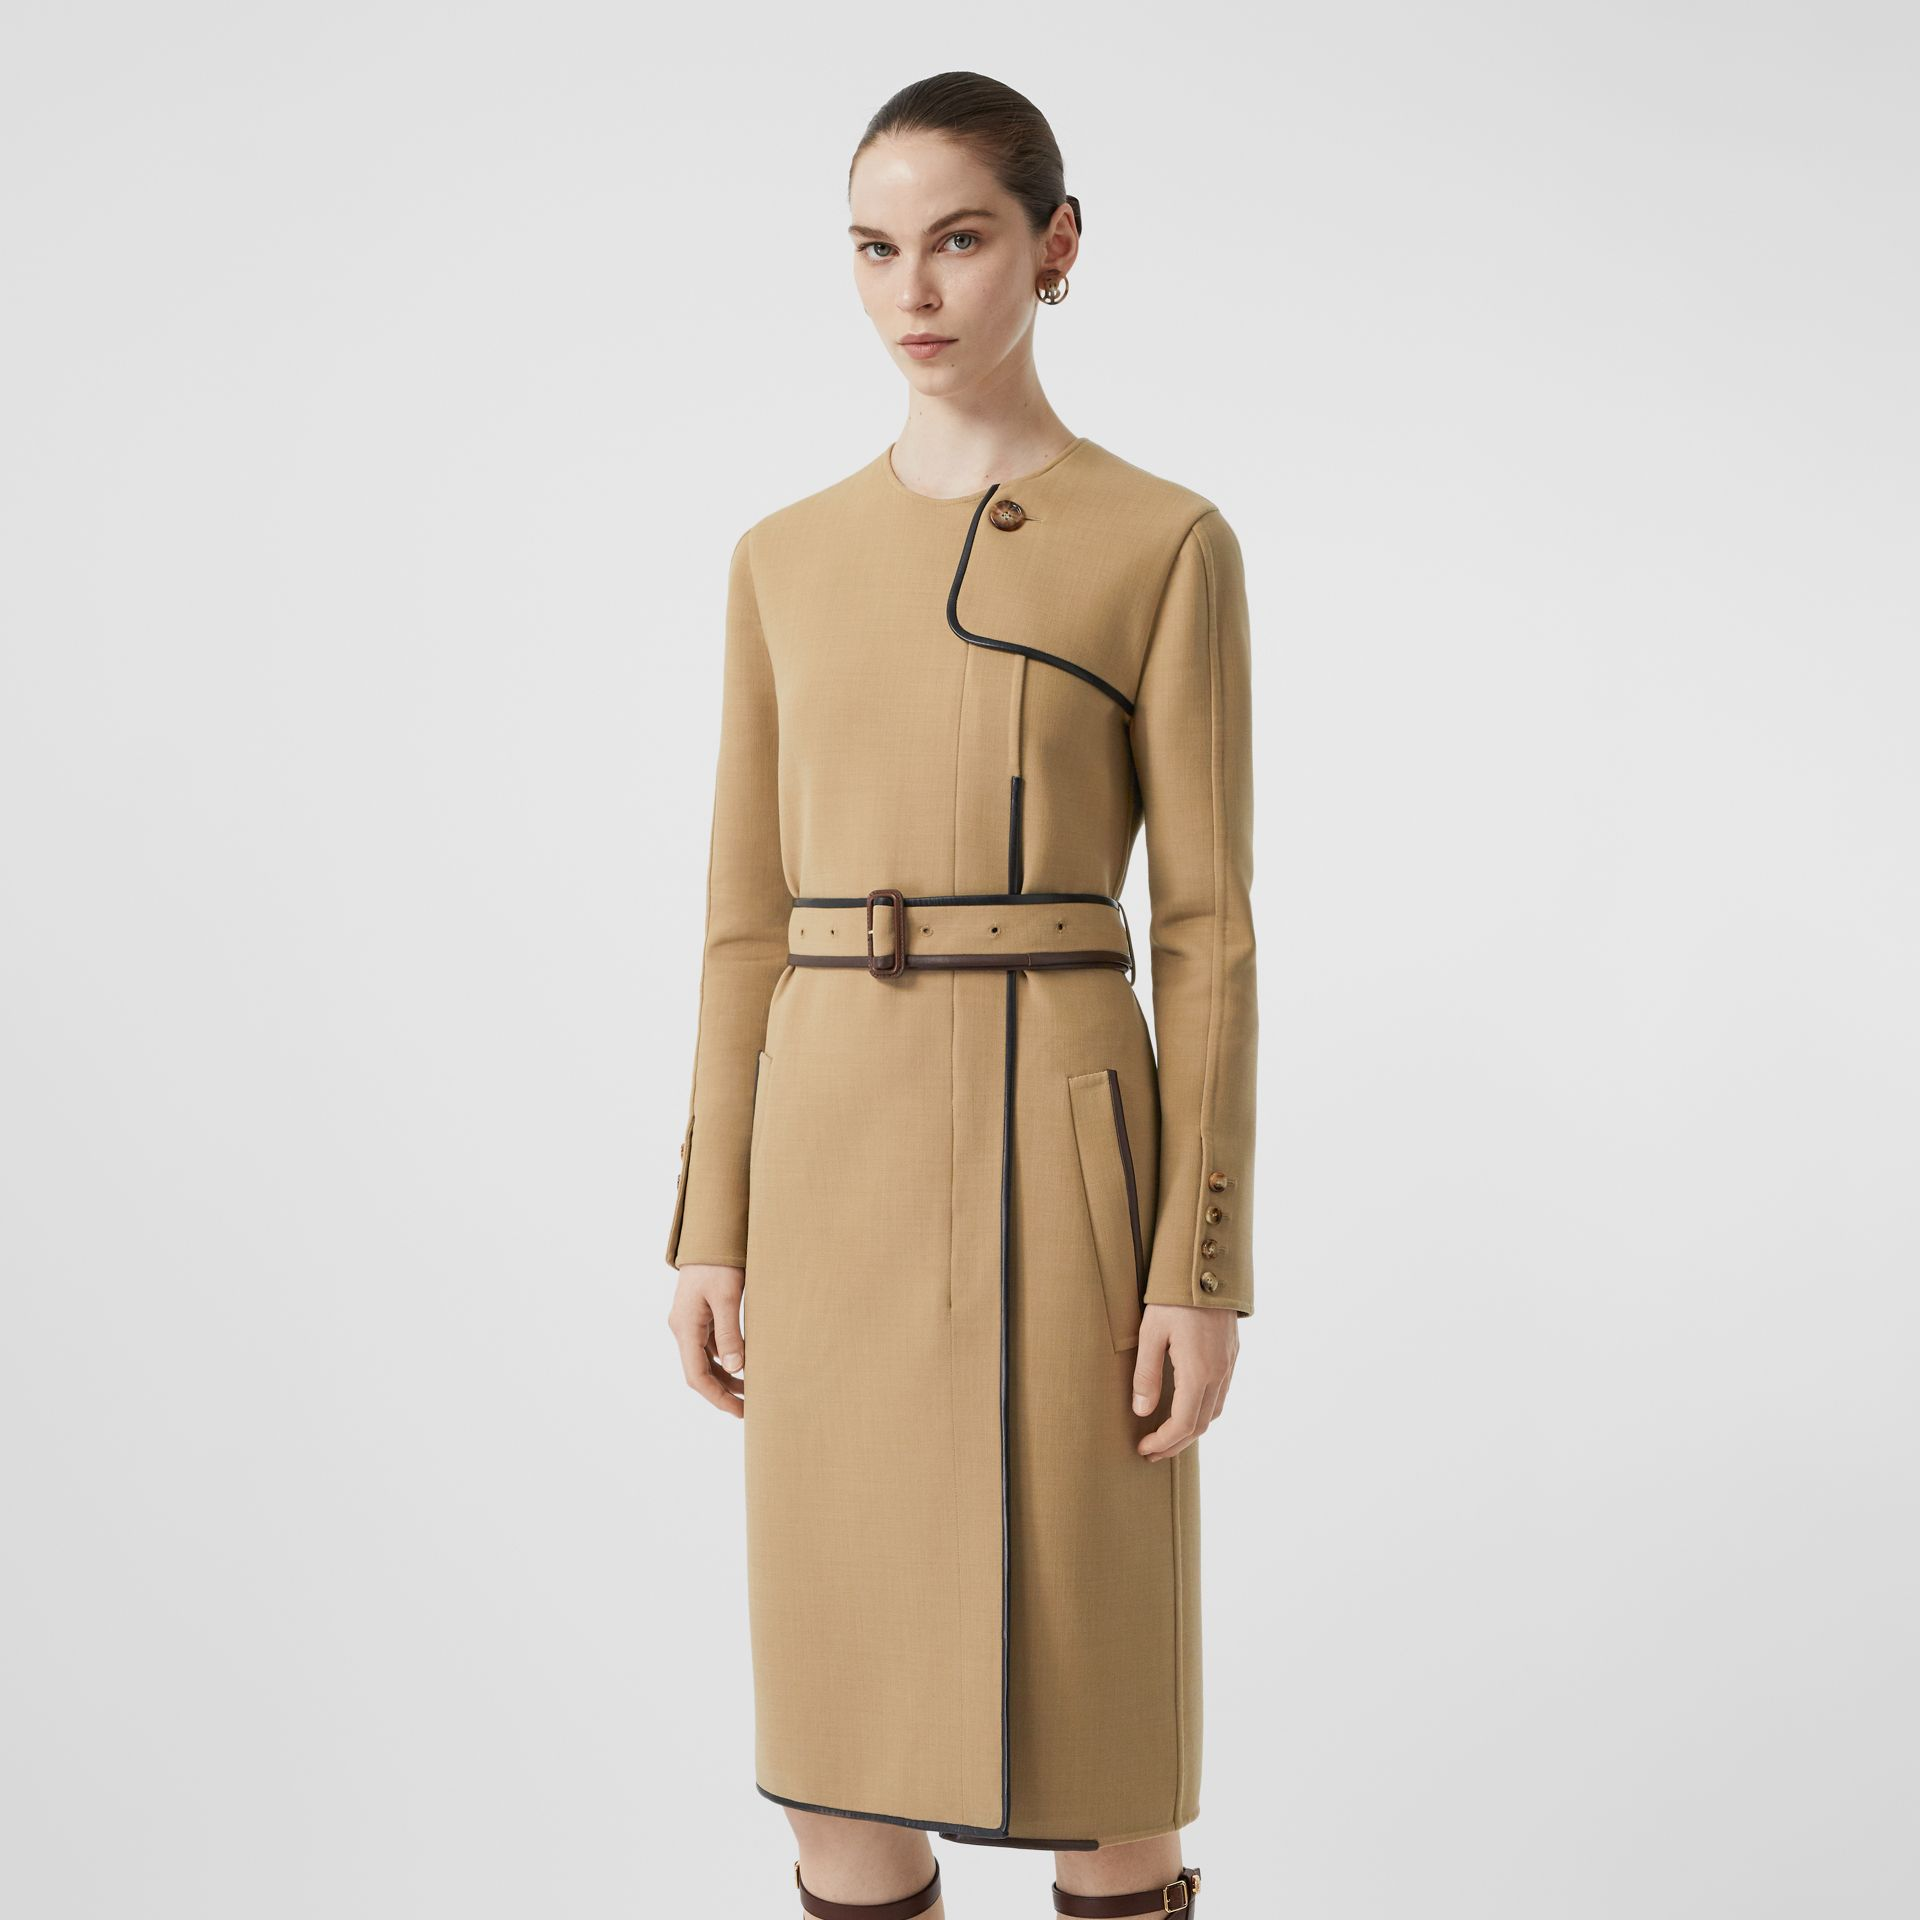 Lambskin Trim Technical Wool Belted Dress in Honey - Women | Burberry - gallery image 5